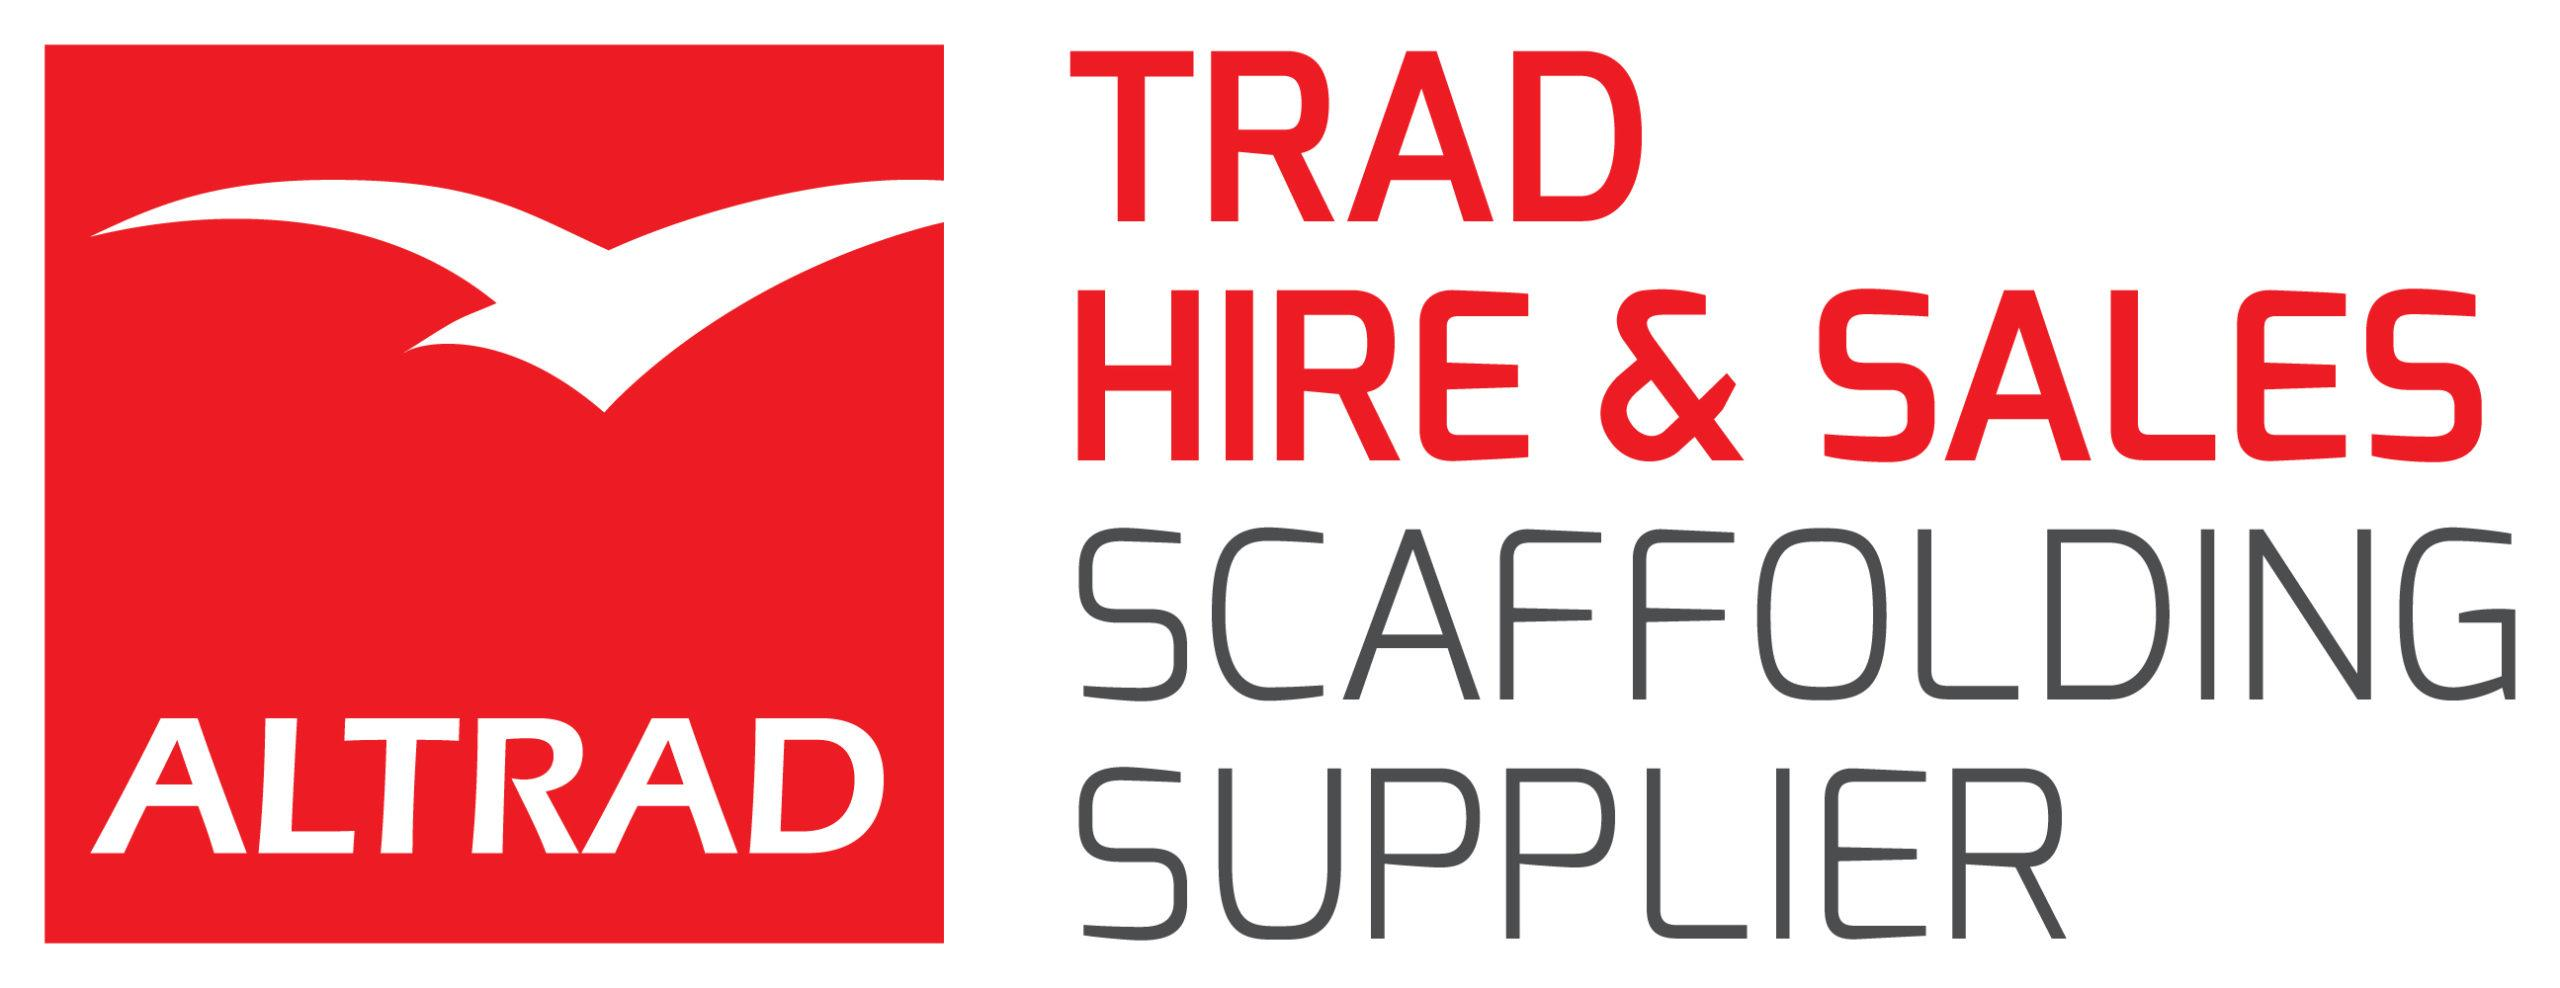 Trad Hire & Sales Ltd